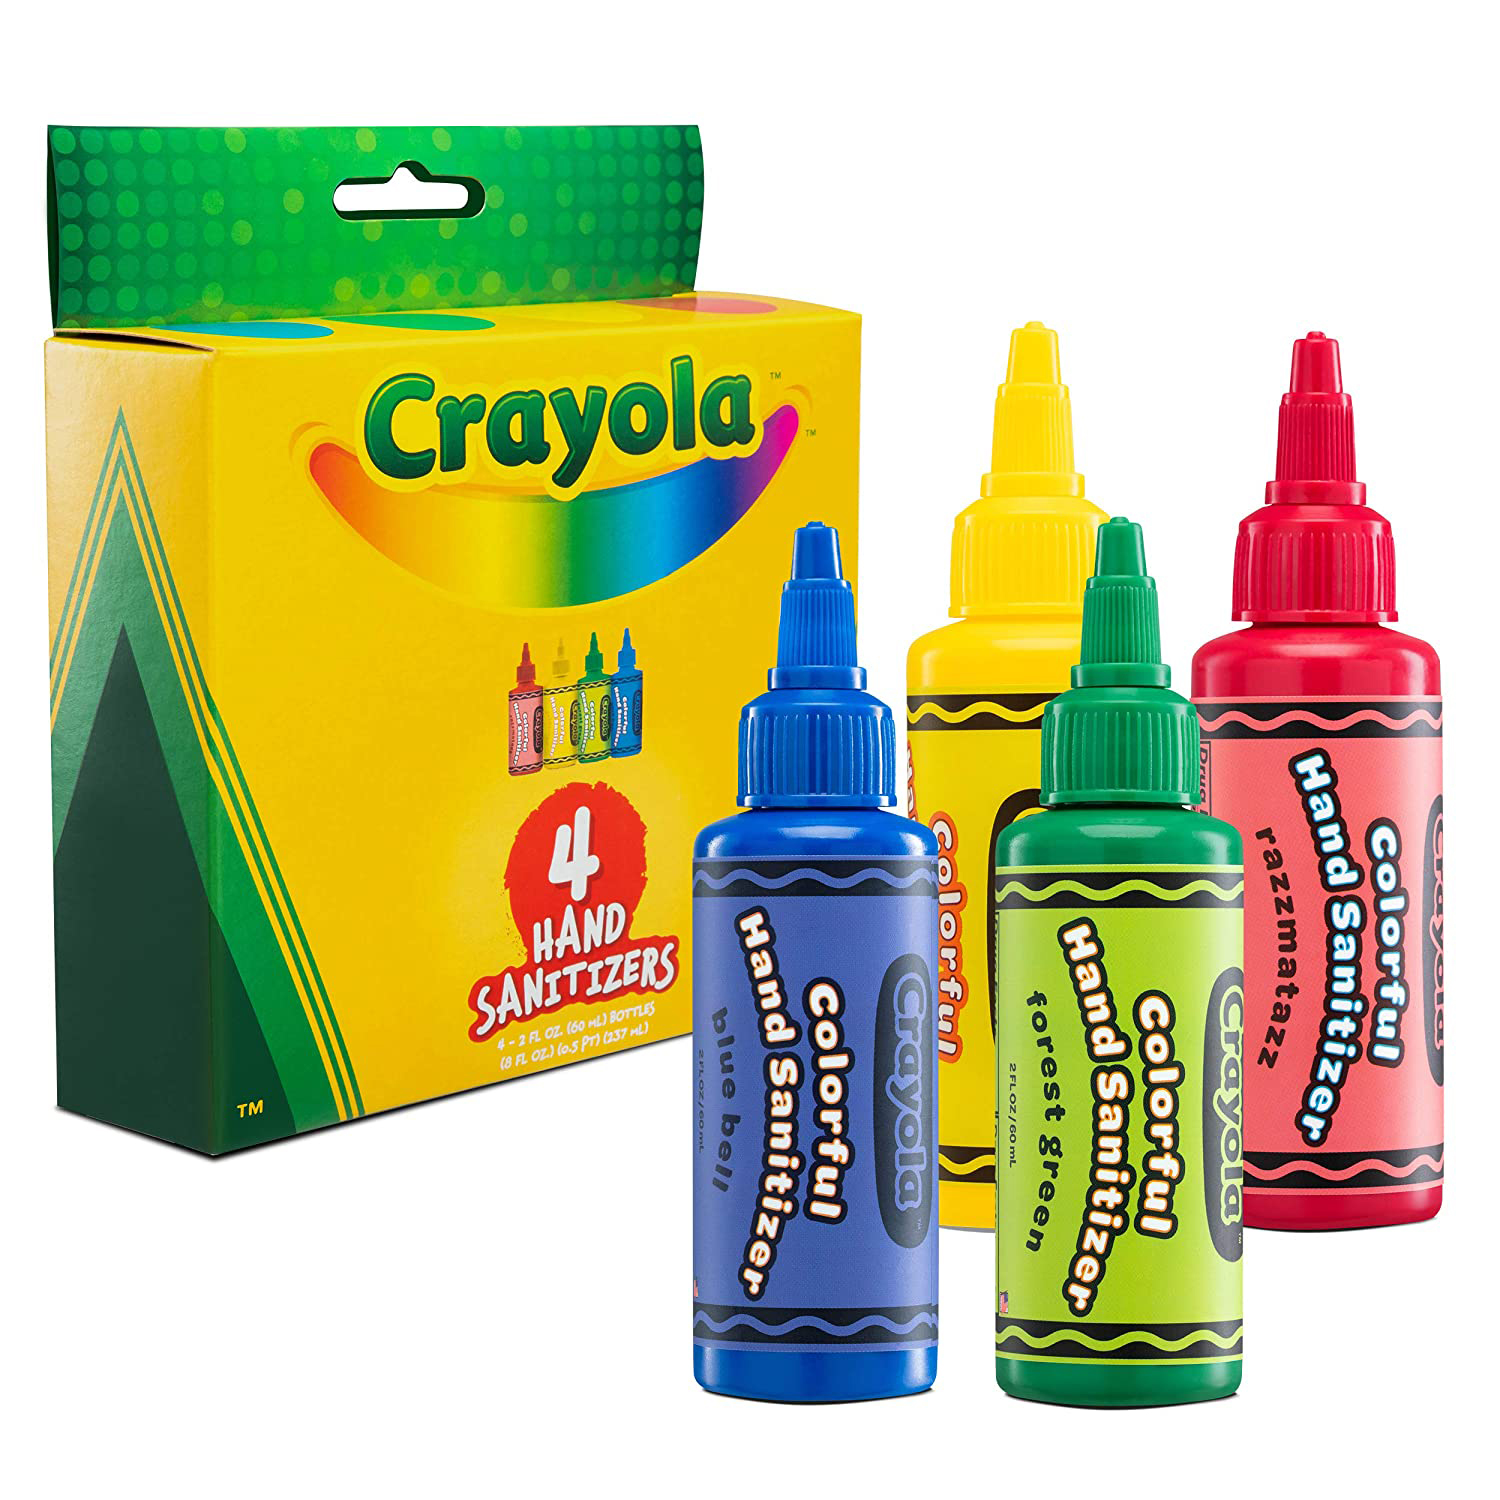 Crayola Hand Sanitizer Gel for Kids | Antibacterial